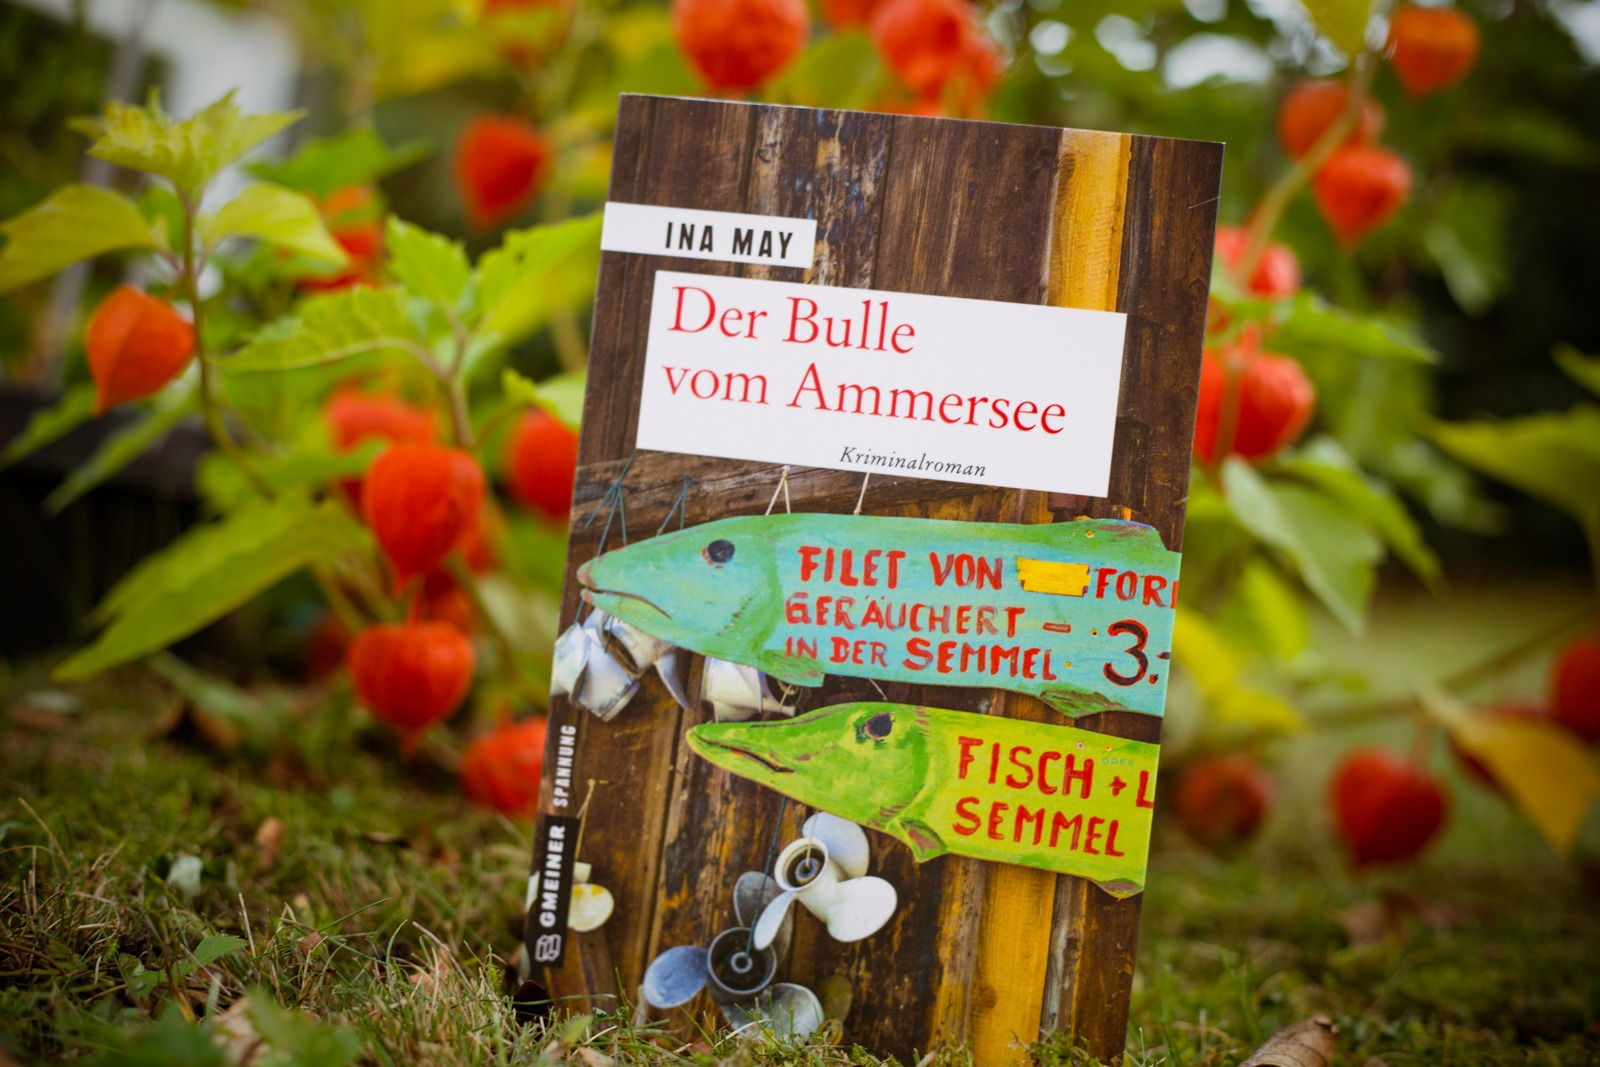 Der Bulle vom Ammersee – Ina May